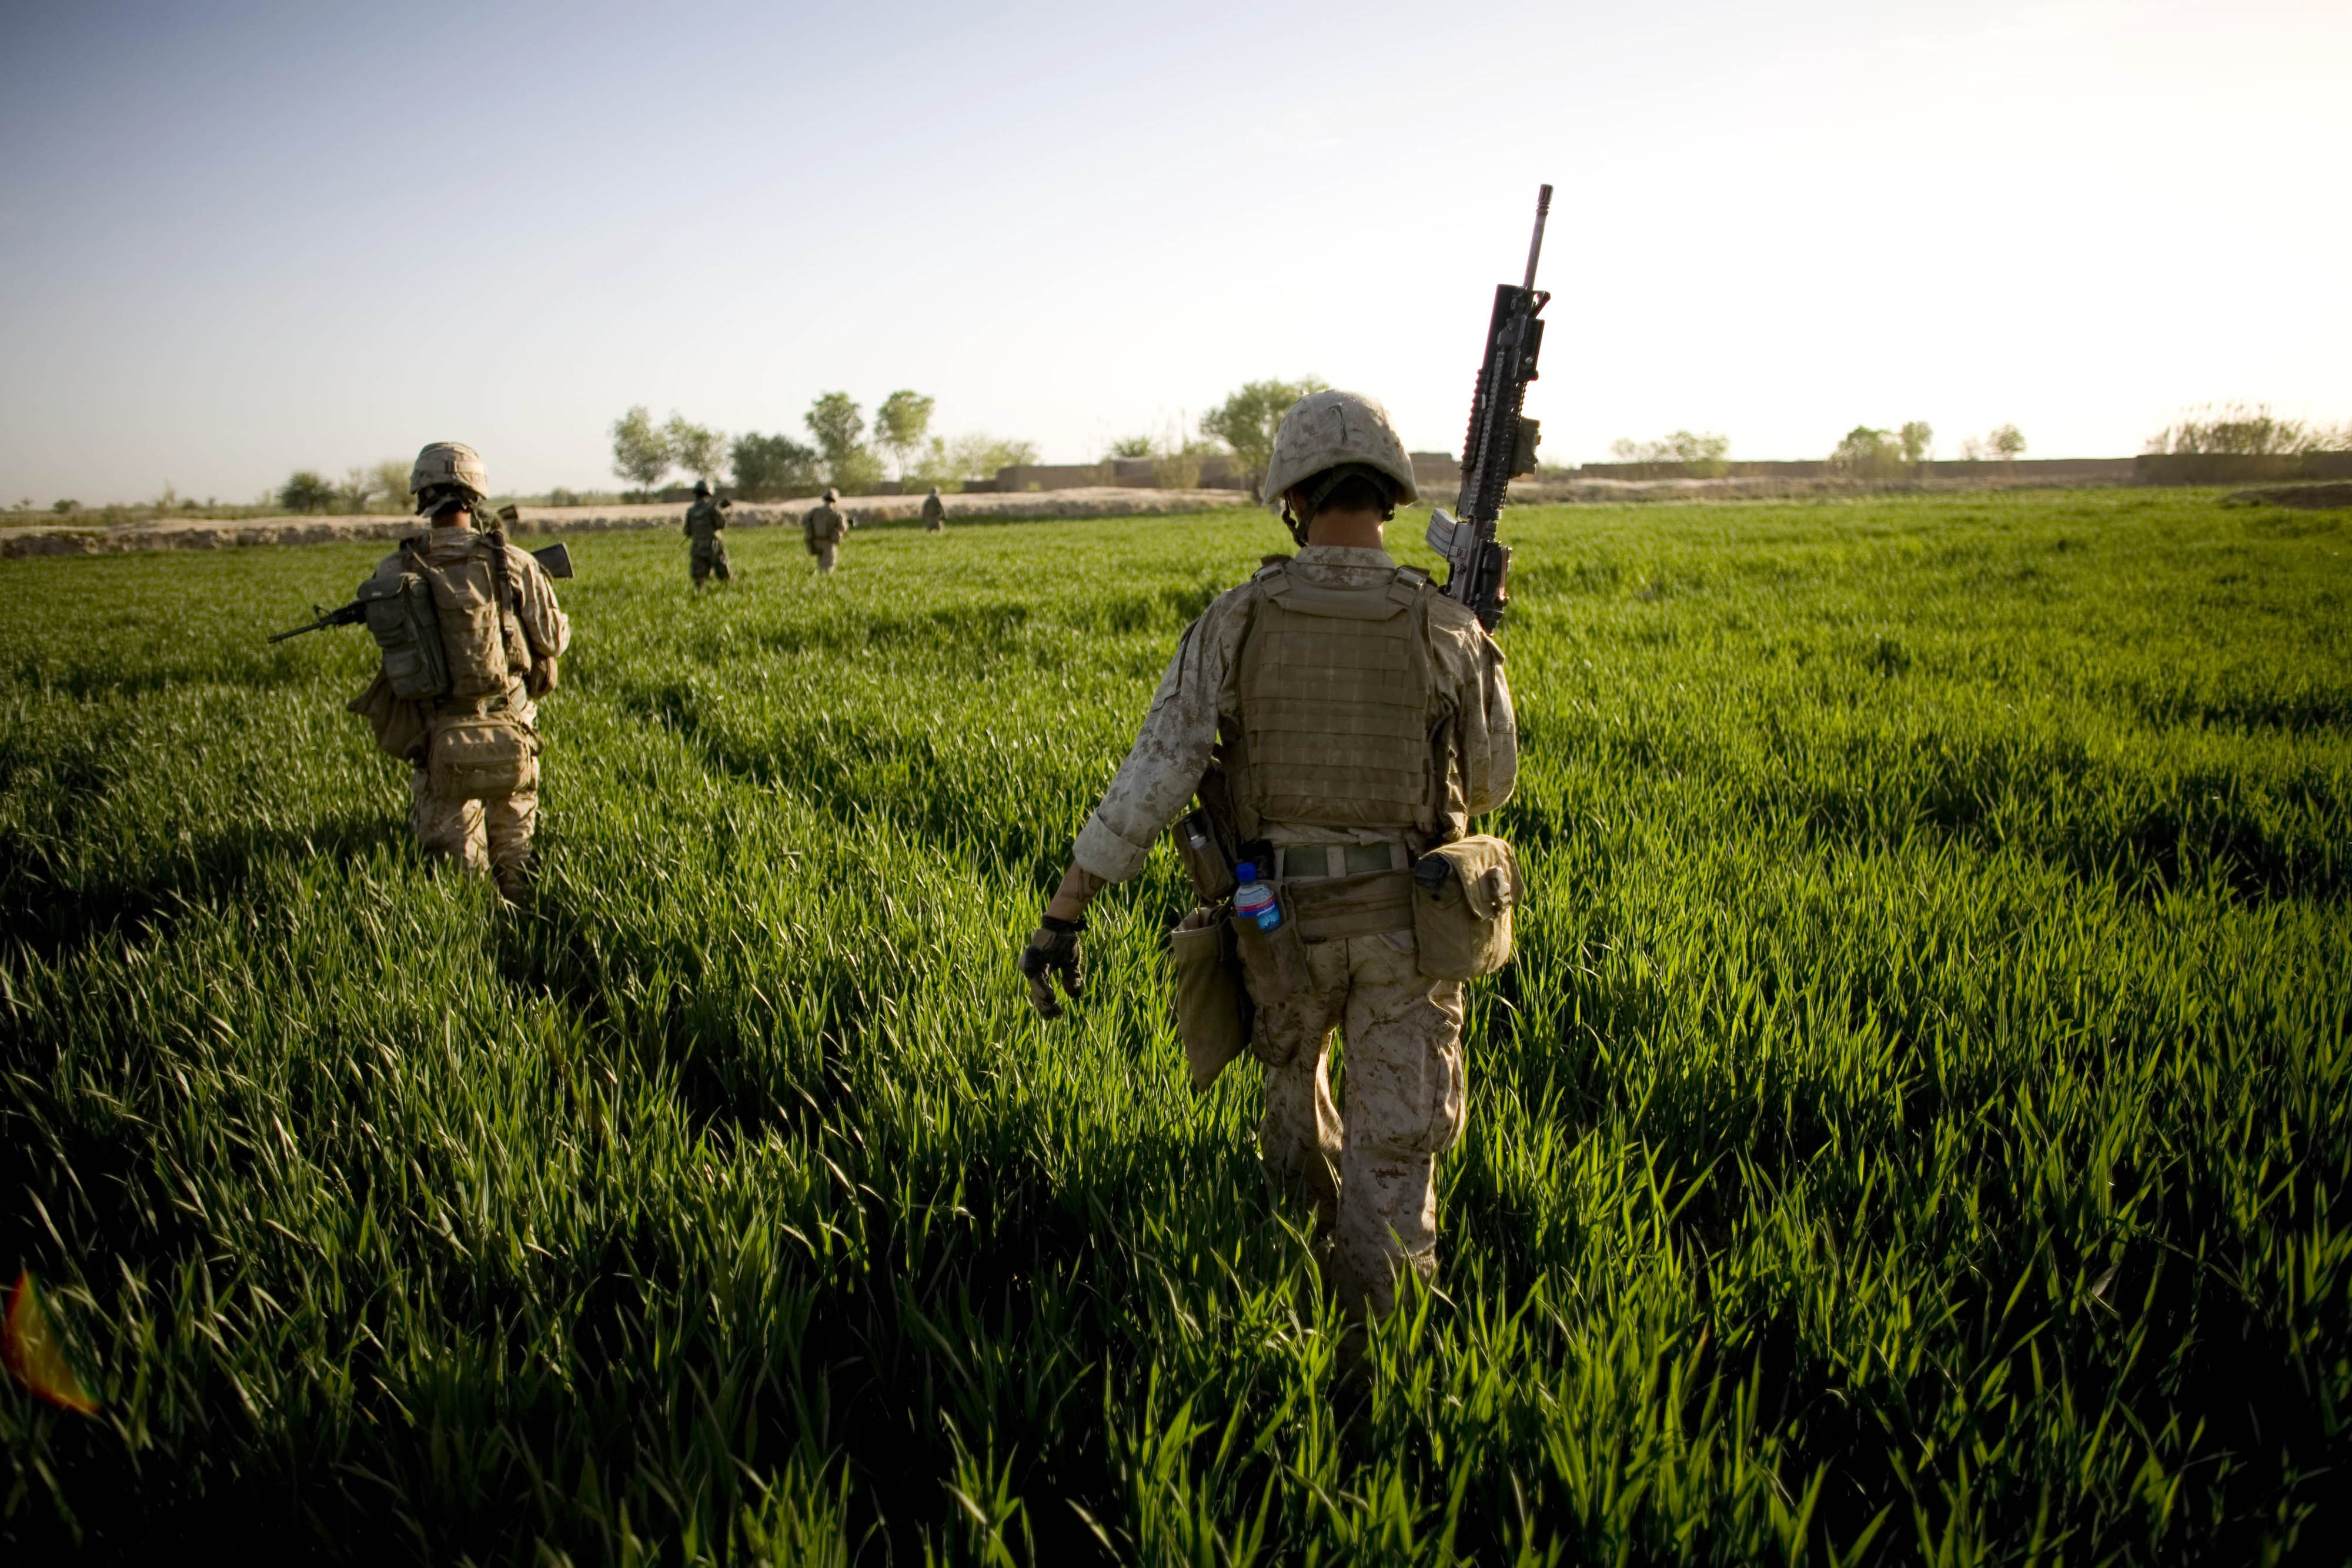 Marines of the 1st Battalion, 6th Marine Regiment patrol in Marjah, Afghanistan. Since U.S., Afghan and NATO forces wrested the town of Marjah from Ta...